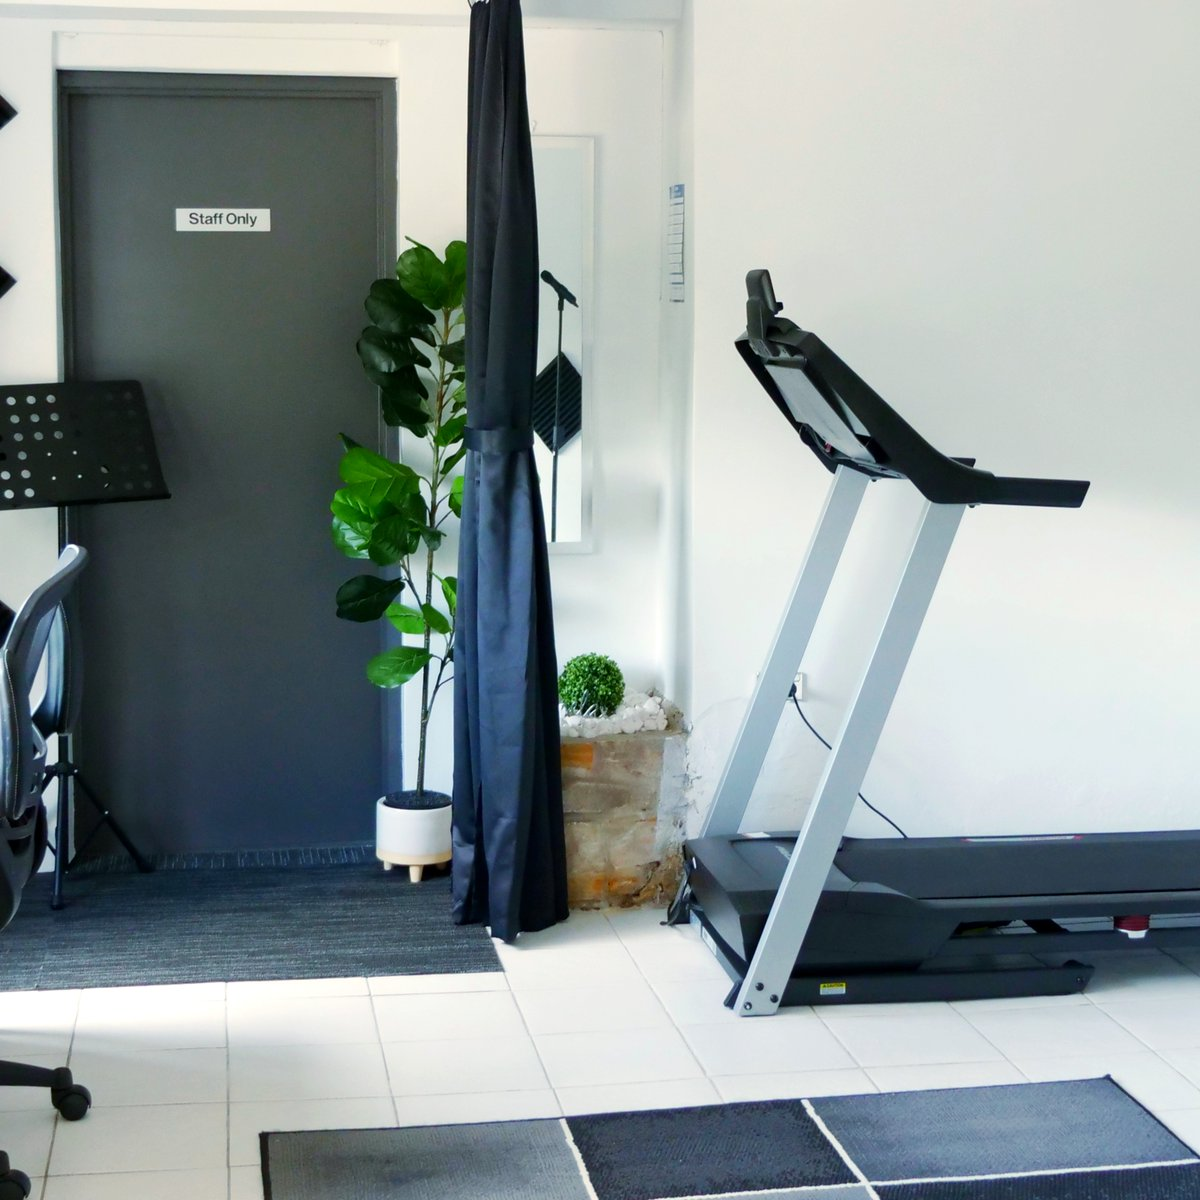 A treadmill? YES! One of the many things we bring to our academy is physical and vocal agility.  To book: https://t.co/i4rykoGbER  #vocalcoach #singers #musicians #singinglessons #singing #singingwarmups #warmups #onlinelessons  #treadmill #fitness #vocalagility #agility #stamina https://t.co/g4PbJeIE0A